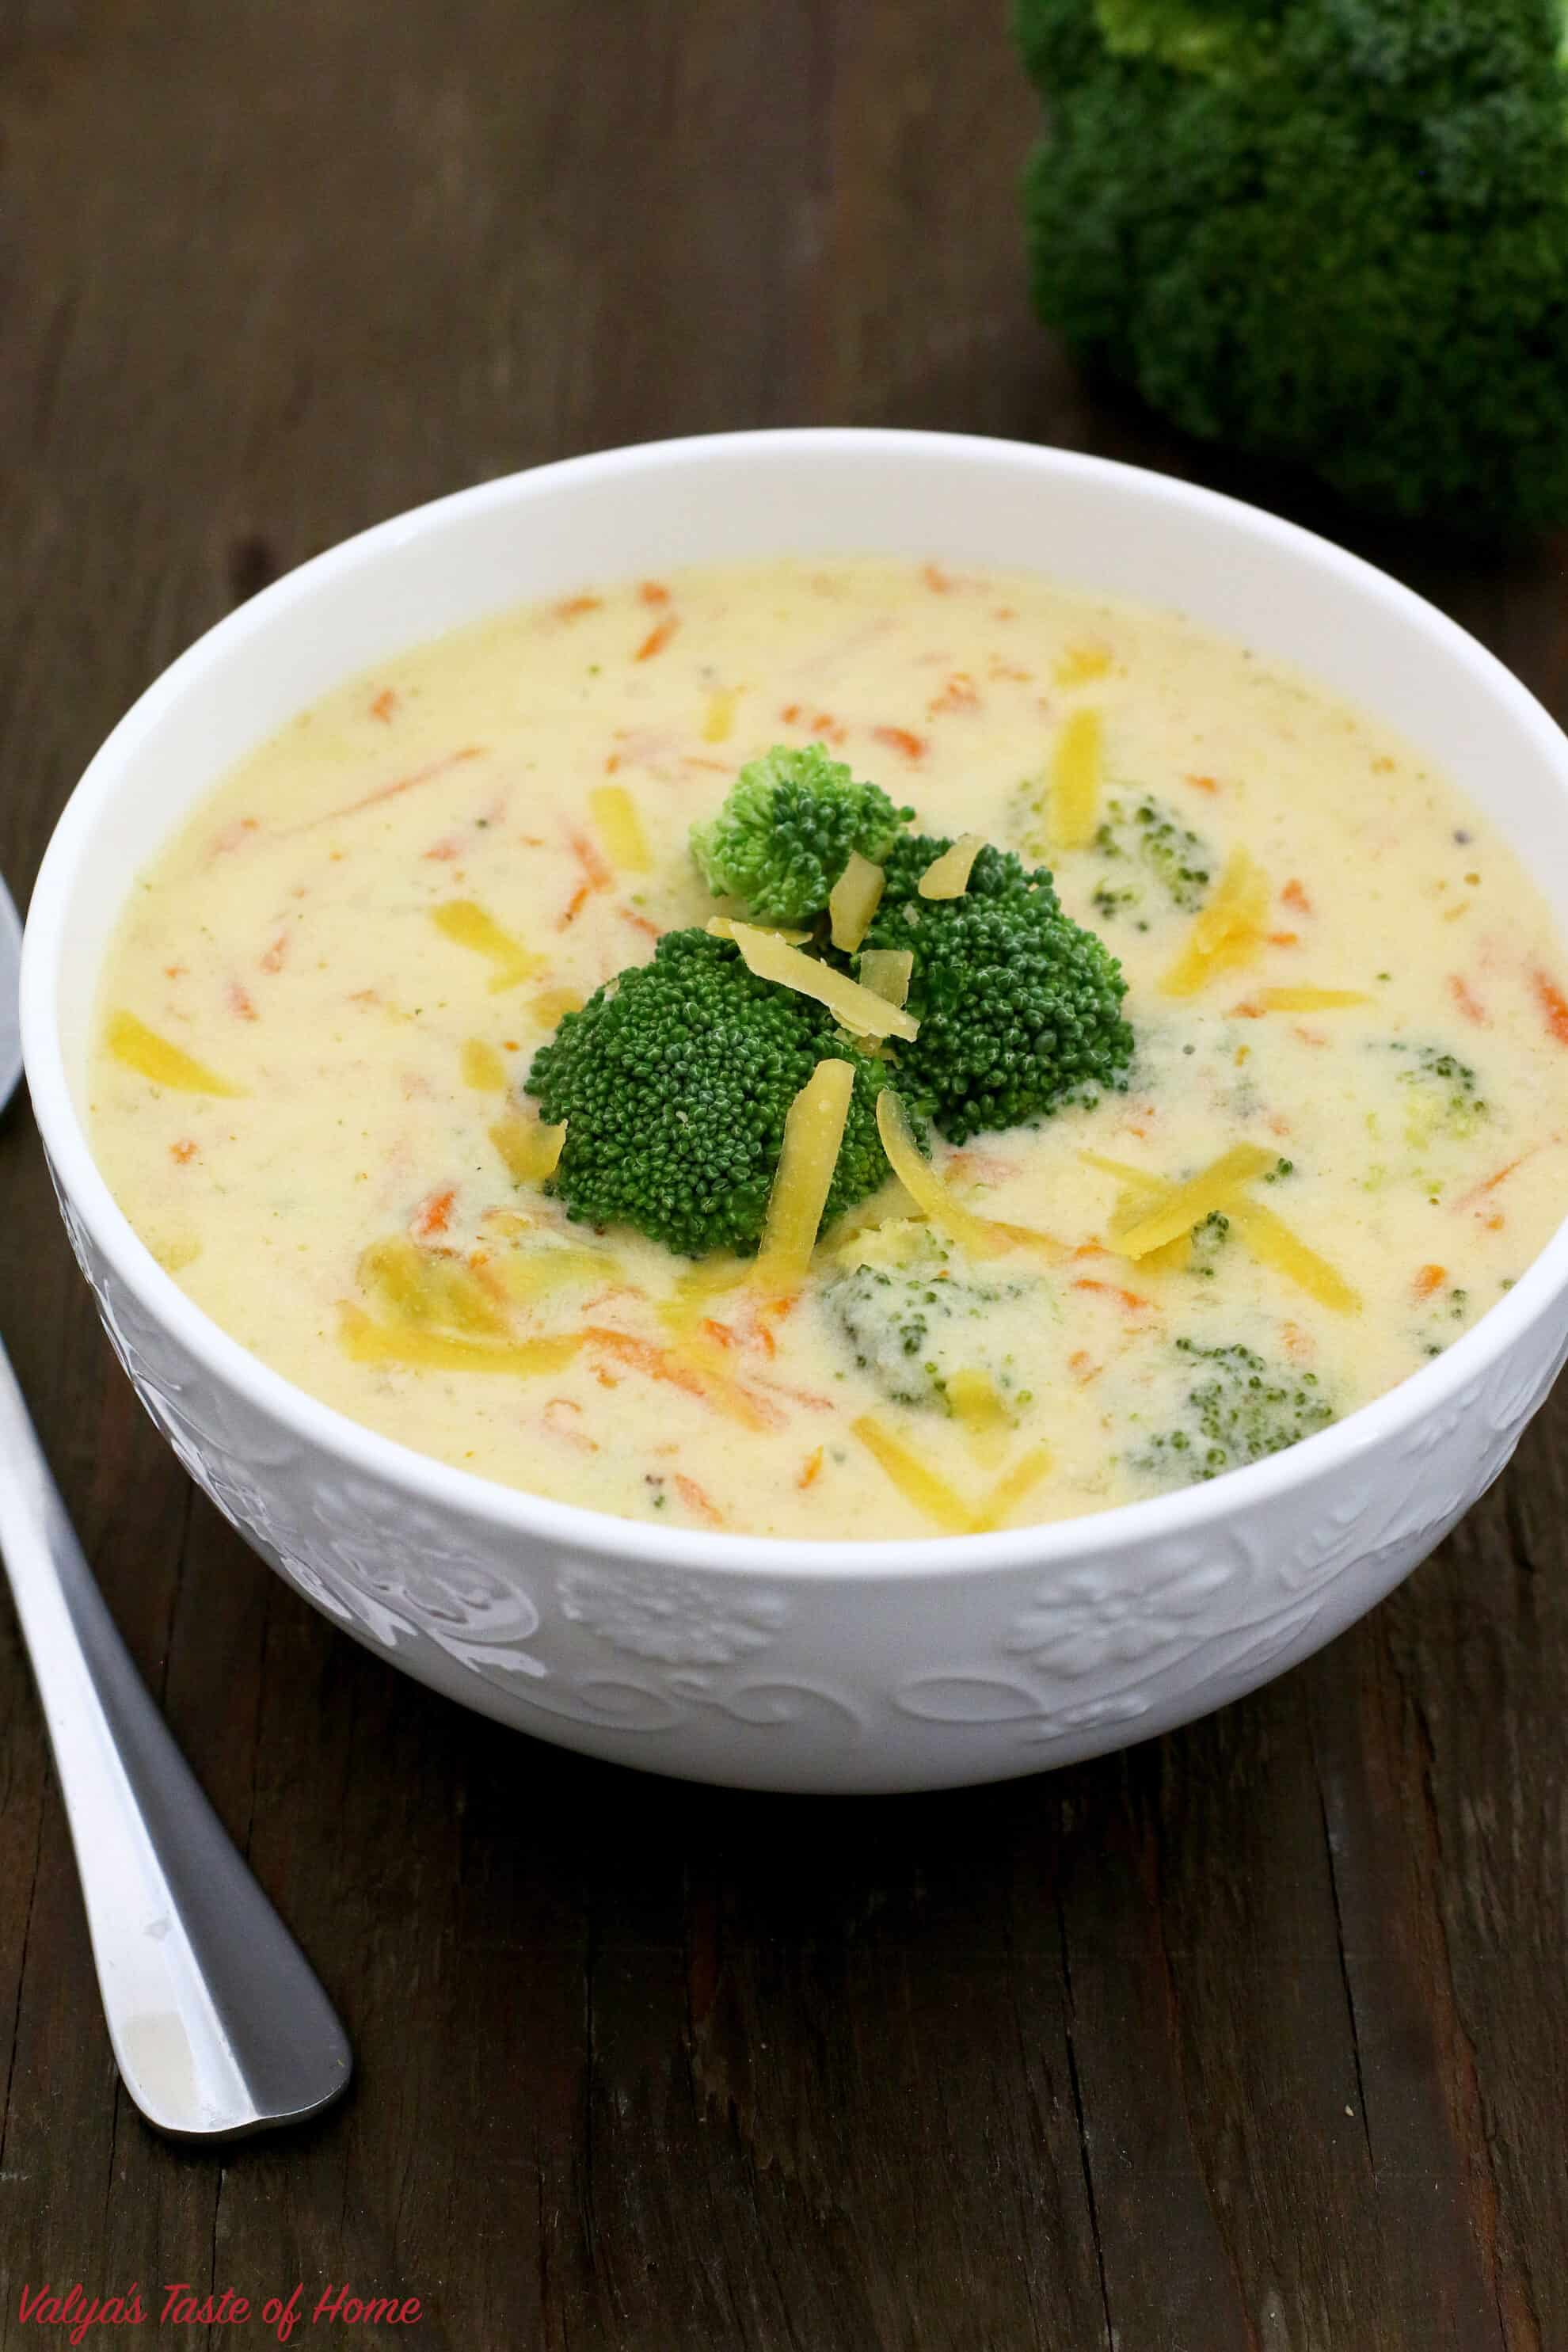 Easy Broccoli and Cheddar Soup (Video)